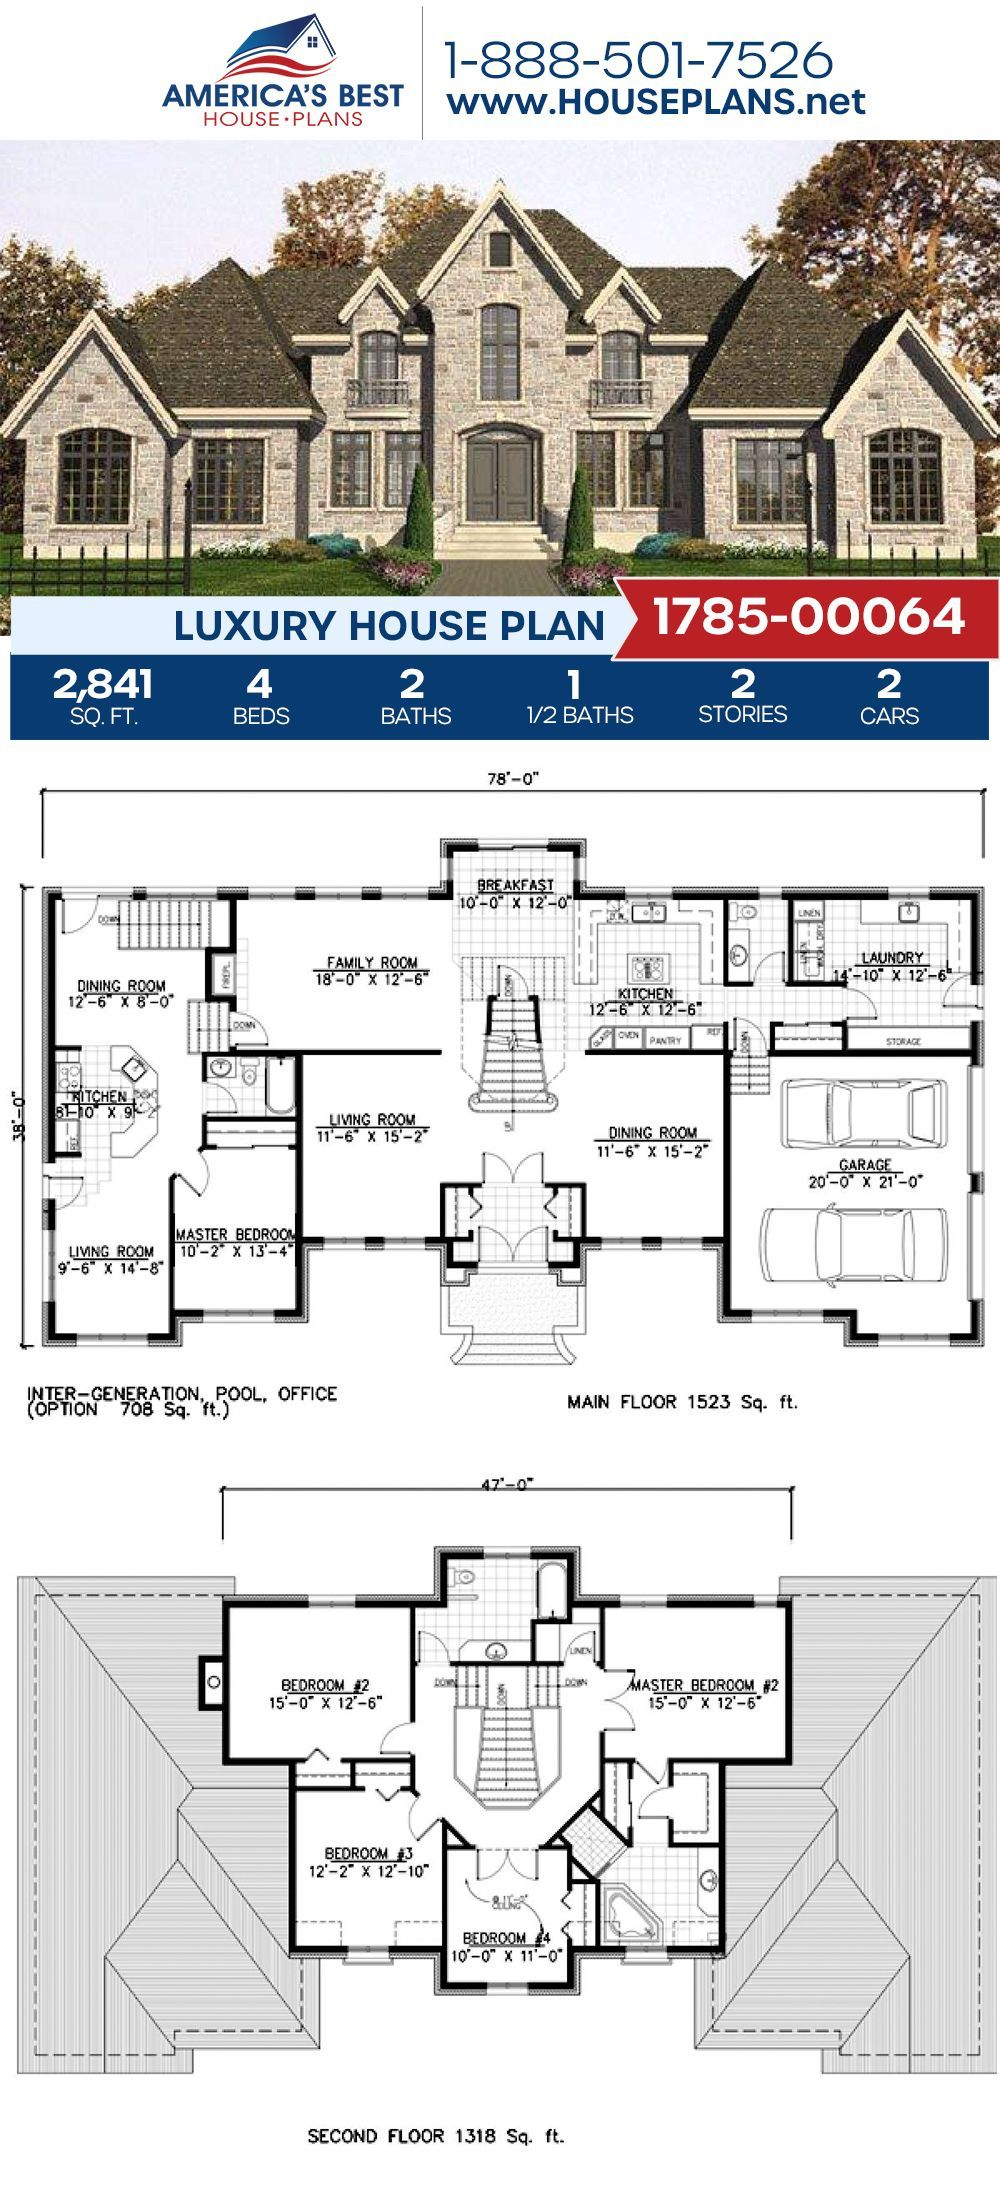 Luxury House Plan 1785 00064 House Plans Mansion Mansion Floor Plan Luxury House Plans